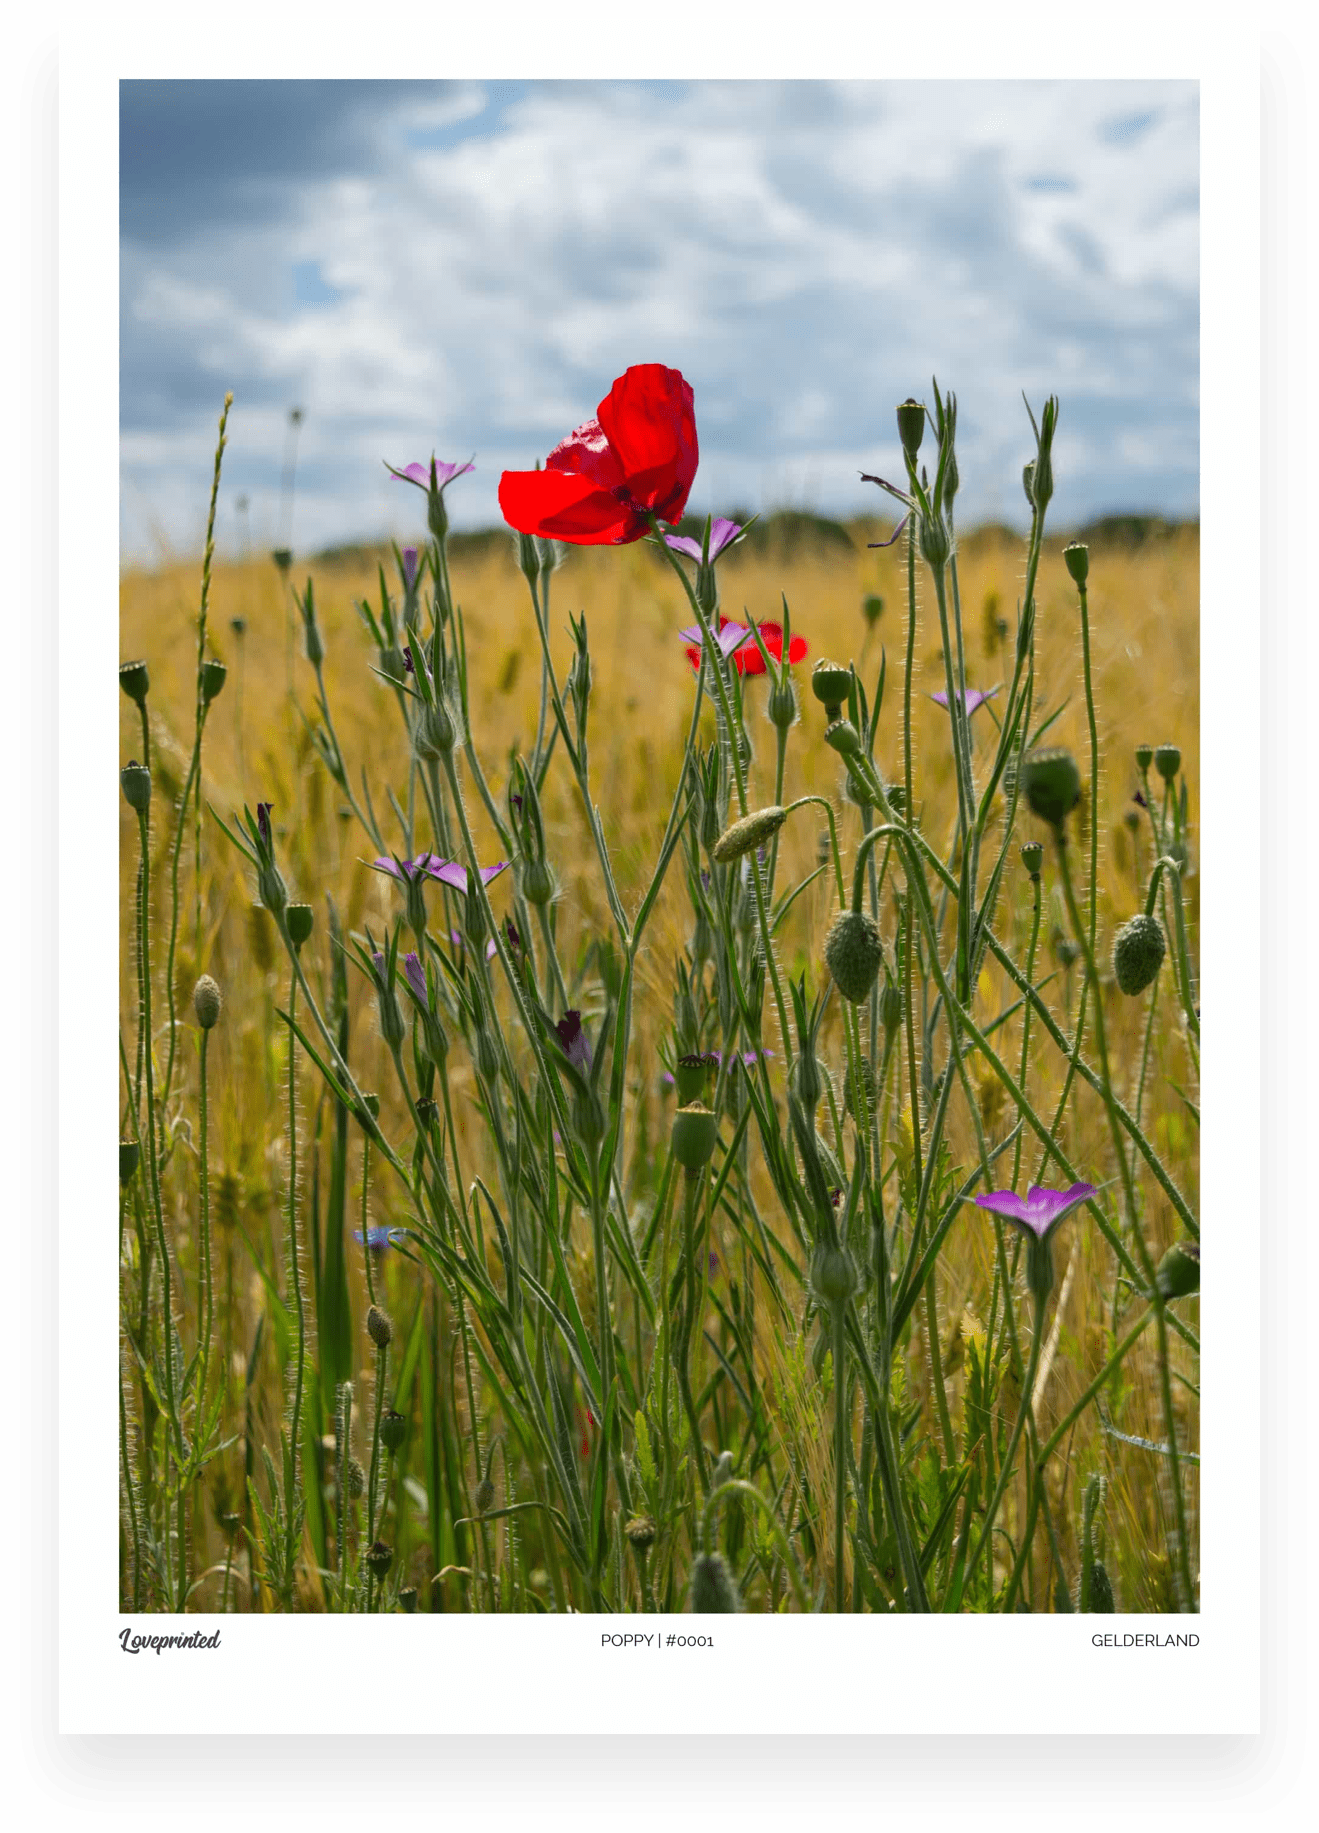 Poppy | An Image of a red poppy flower in a field made by Loveprinted